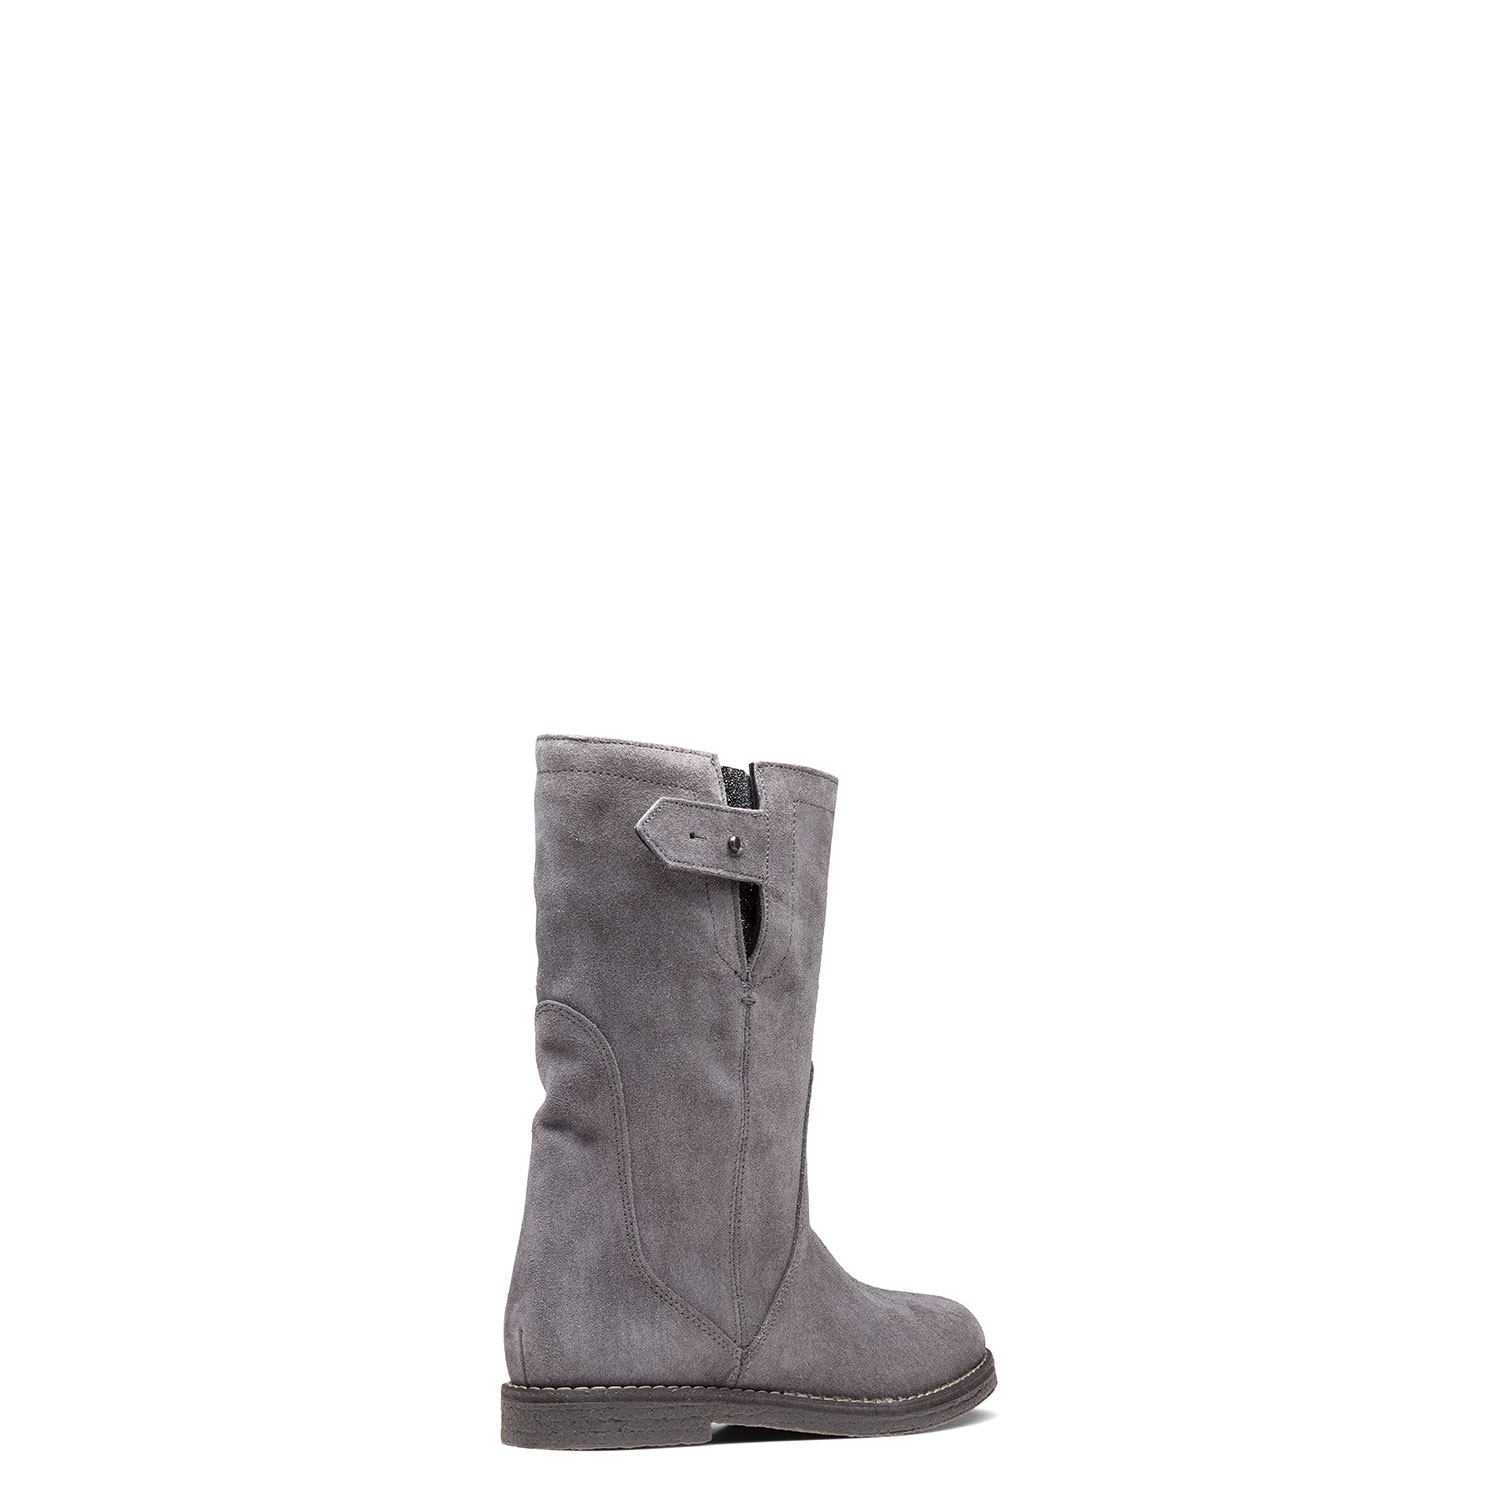 Women's cold weather mid-calf boots CARLO PAZOLINI SW-SNW2-10